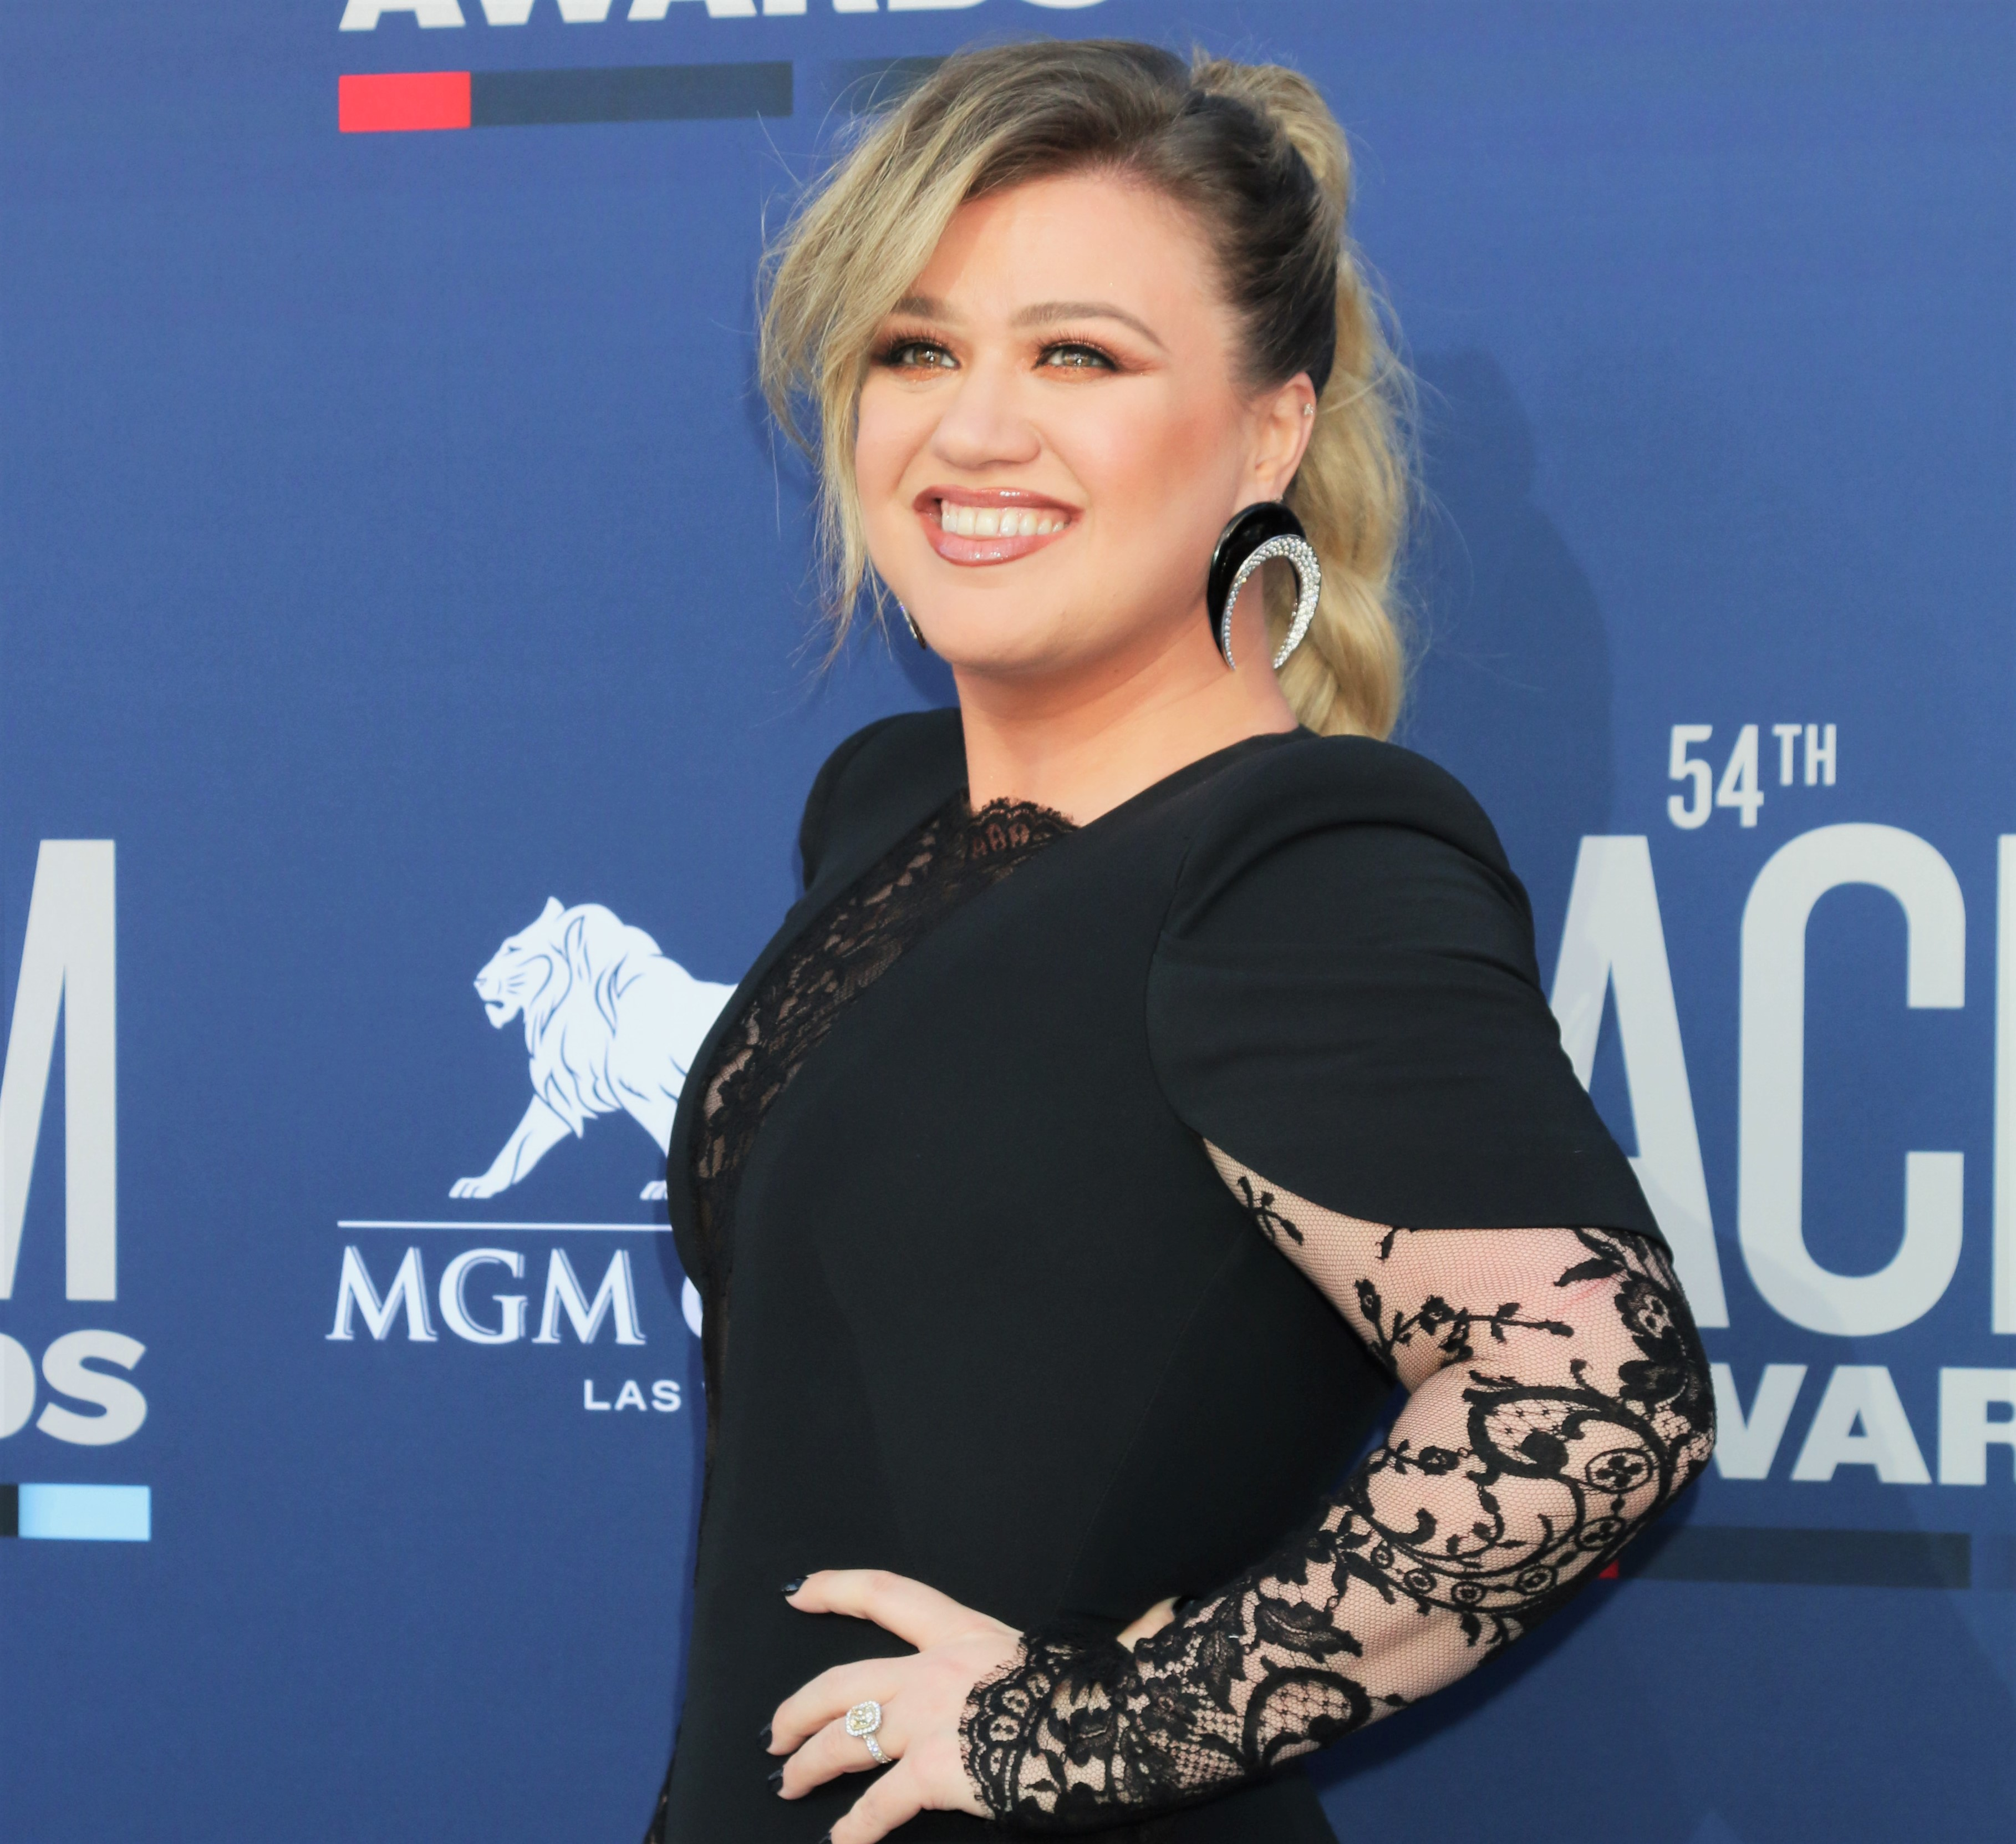 Kelly Clarkson Told Her Kids That 'Mommy and Daddy' Made Their Easter Baskets — Not a Bunny